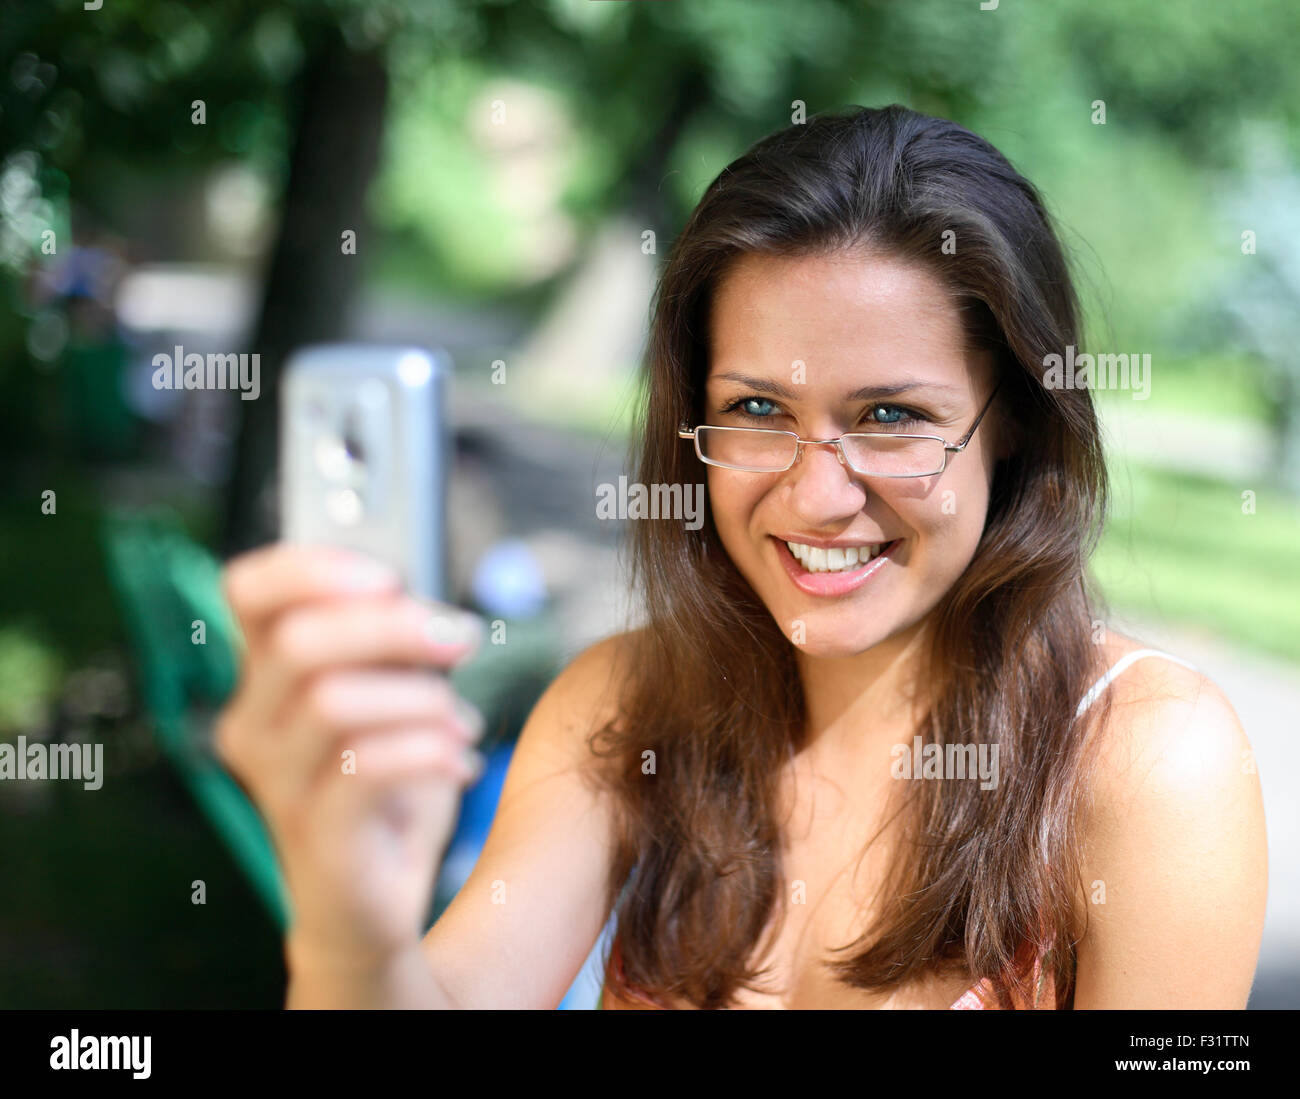 Girl doing a selfy. - Stock Image